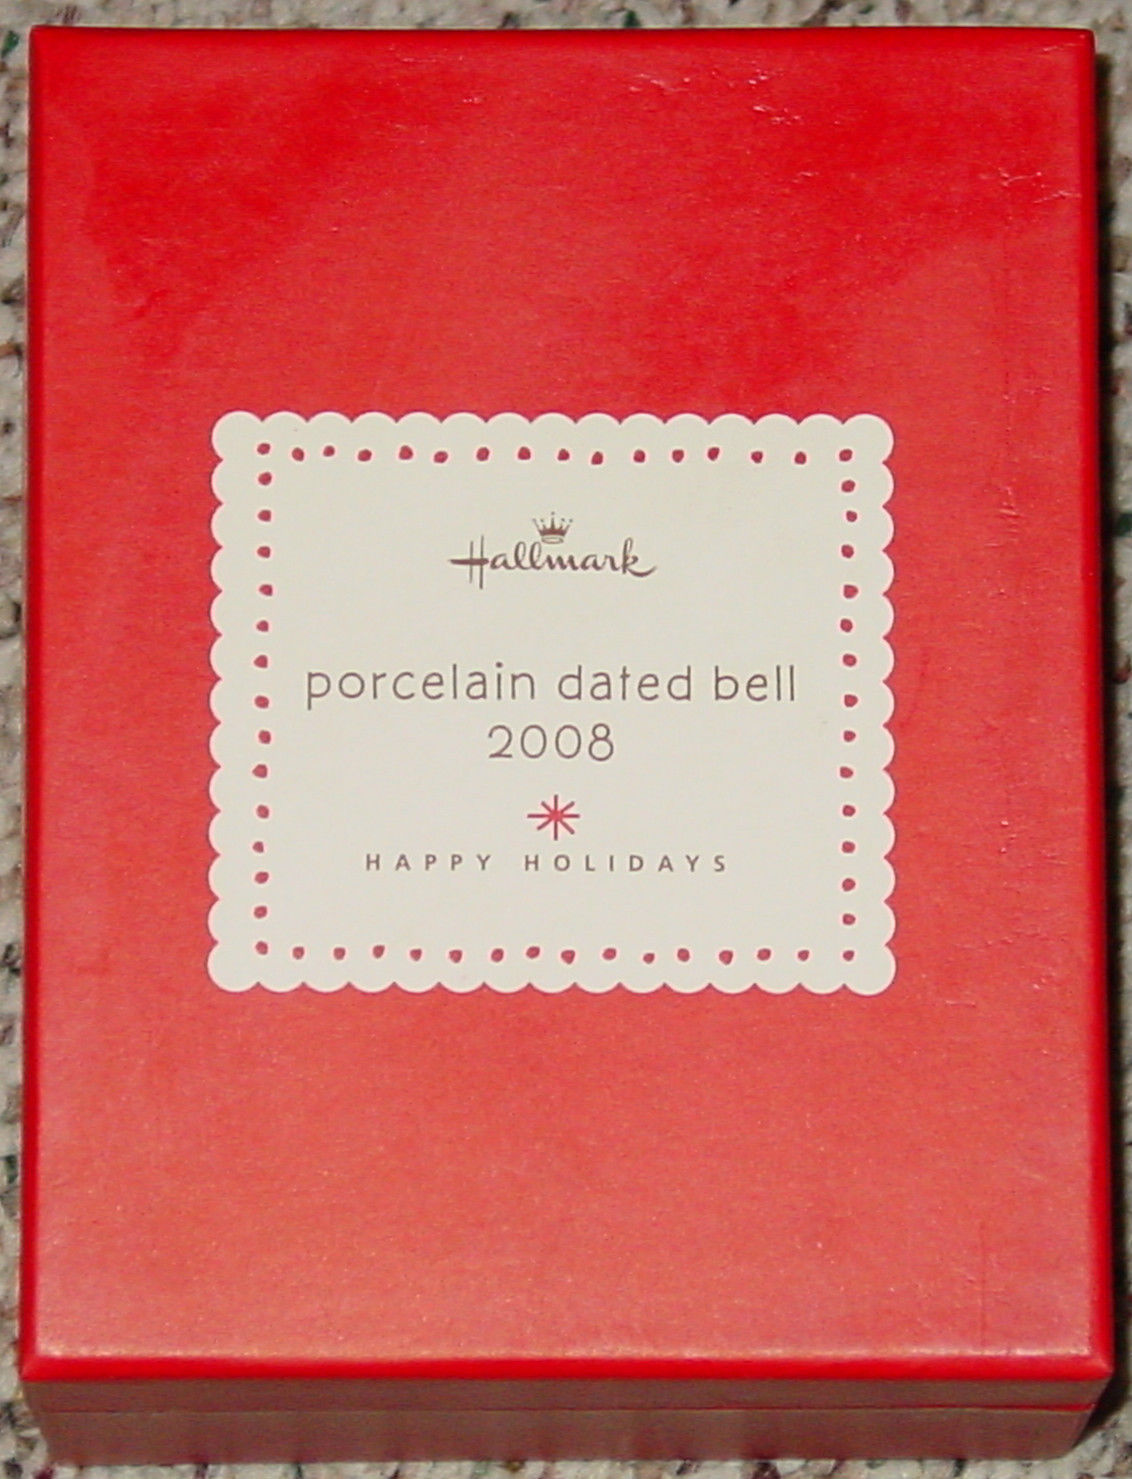 BELLS HALLMARK PORCELAIN DATED BELL DATED 2008 IN RED GIFT BOX image 2